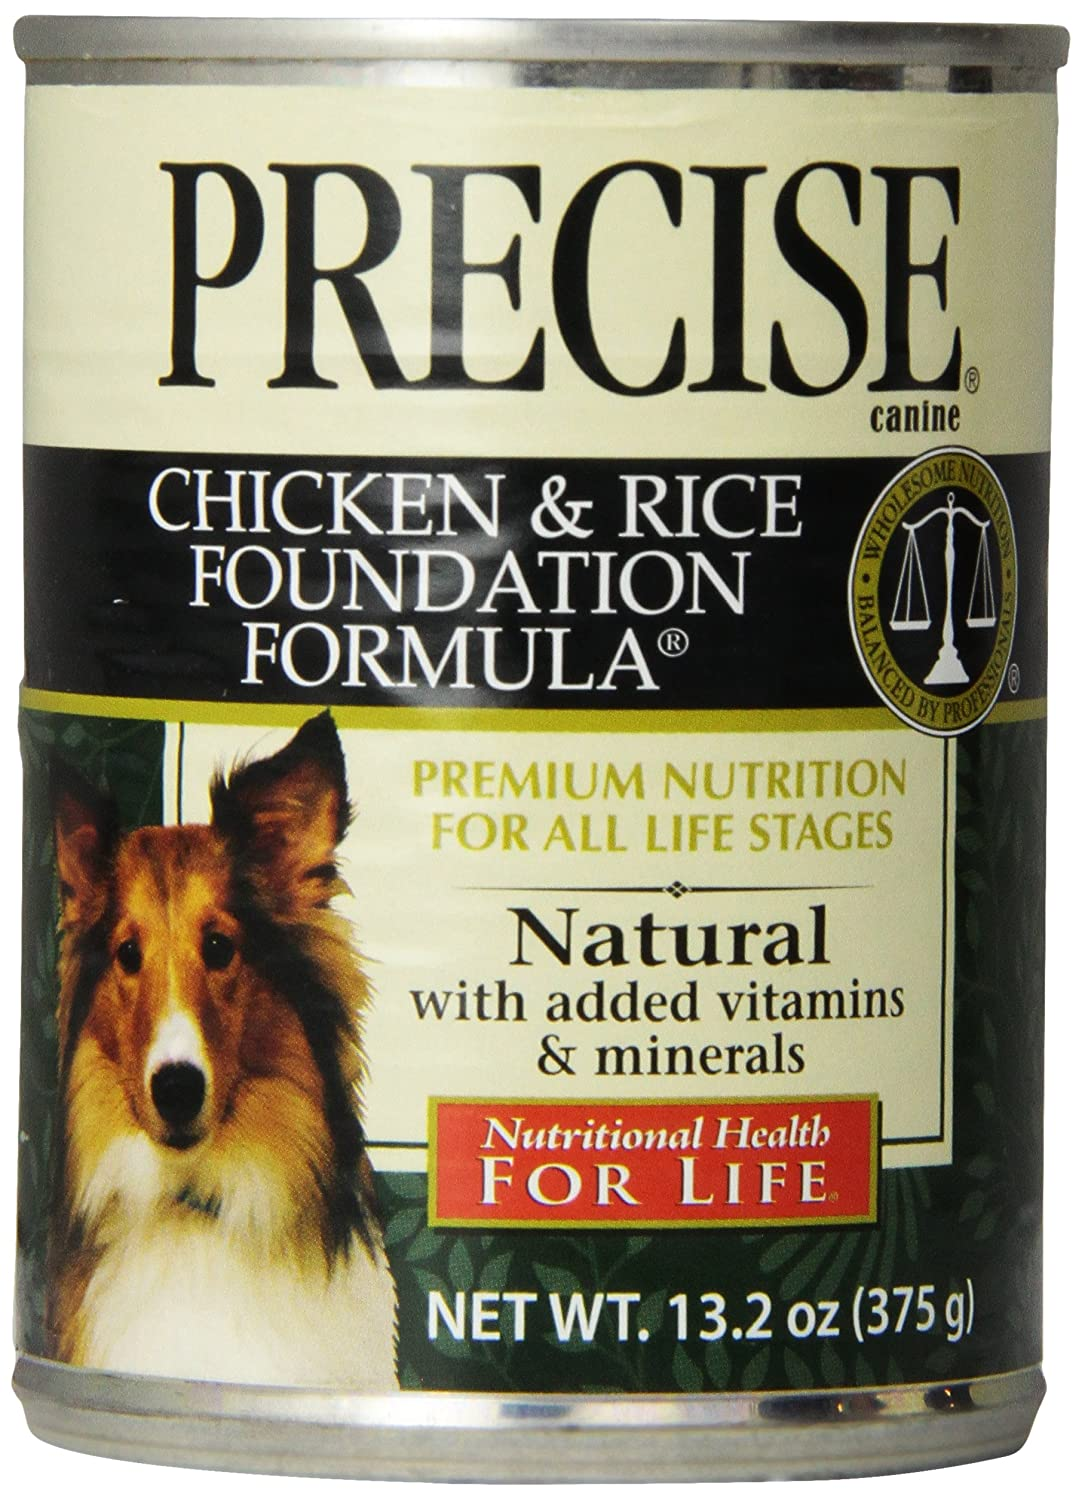 Precise 726071 12-Pack Canine Foundation Can Food for Pets 13.2-Ounce